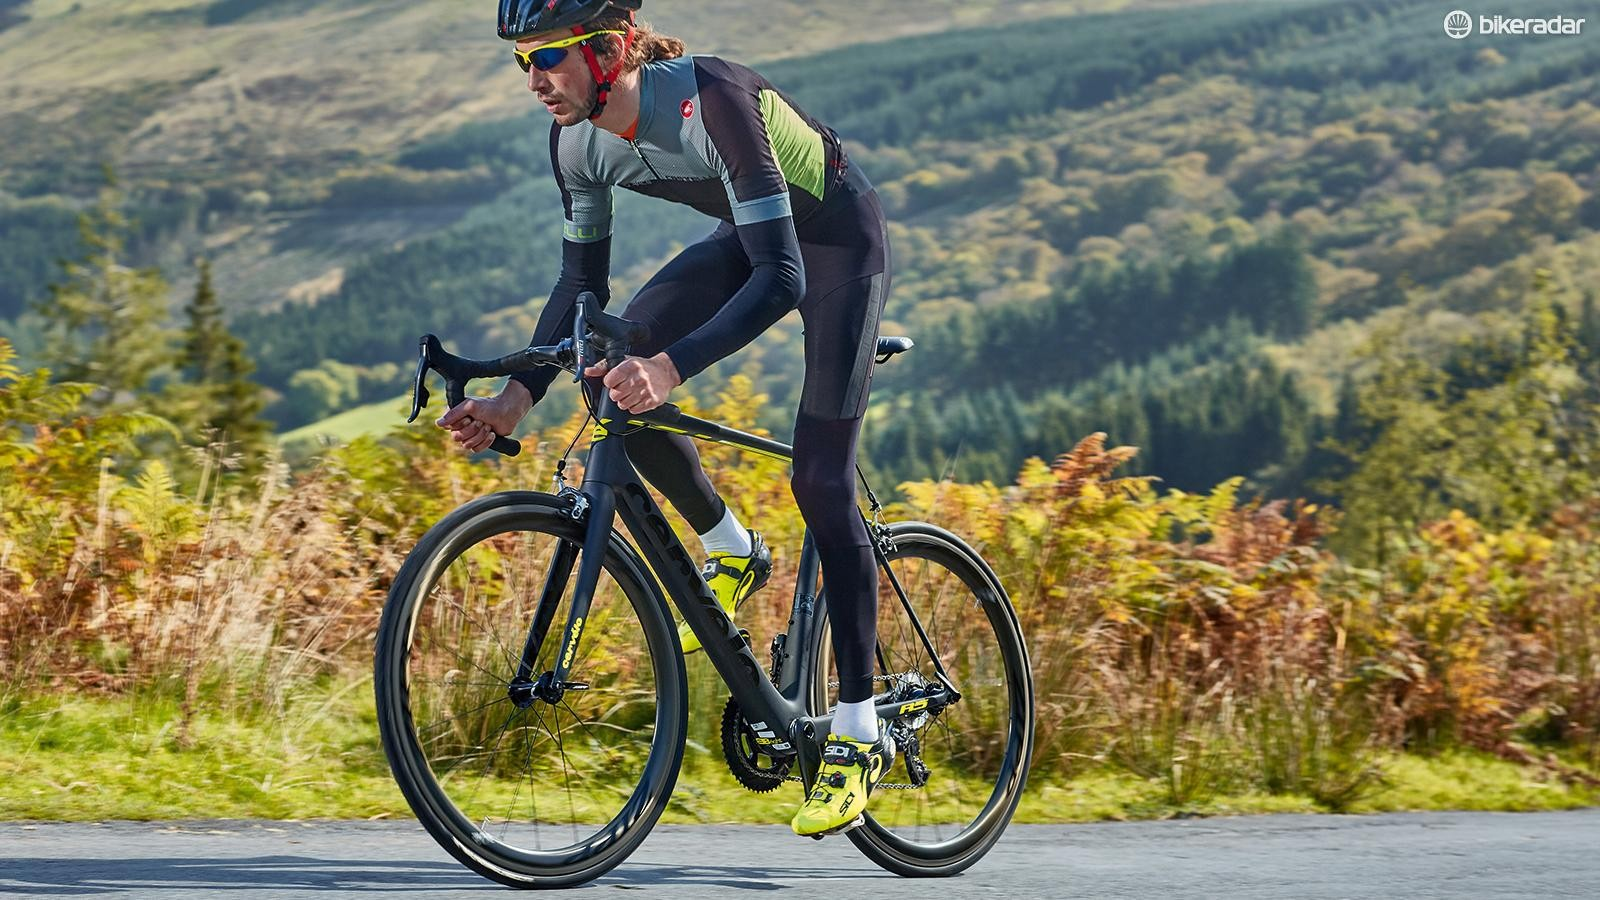 Standing out of the saddle and stomping on the pedals is met with stunning acceleration